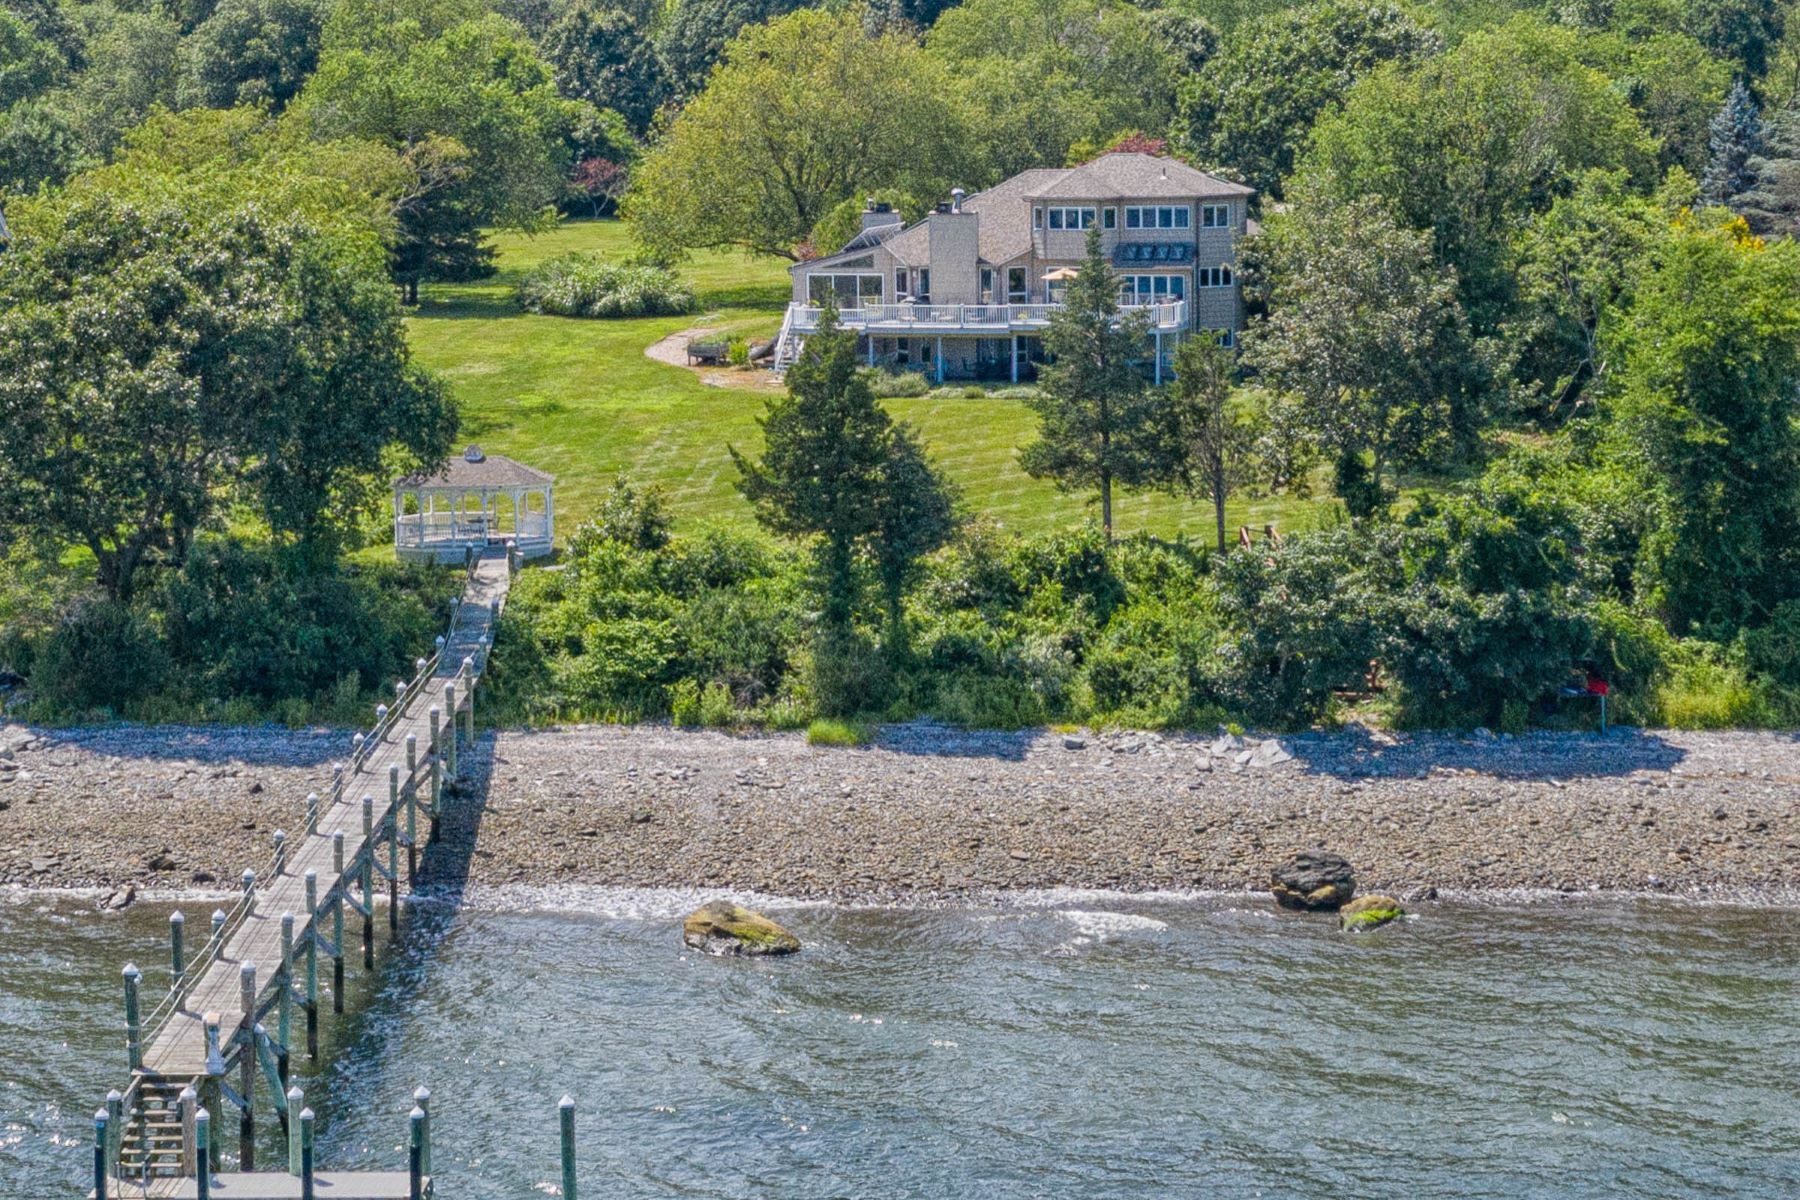 Single Family Homes for Sale at 5 Aquidneck Court, Jamestown, RI 5 Aquidneck Court Jamestown, Rhode Island 02835 United States